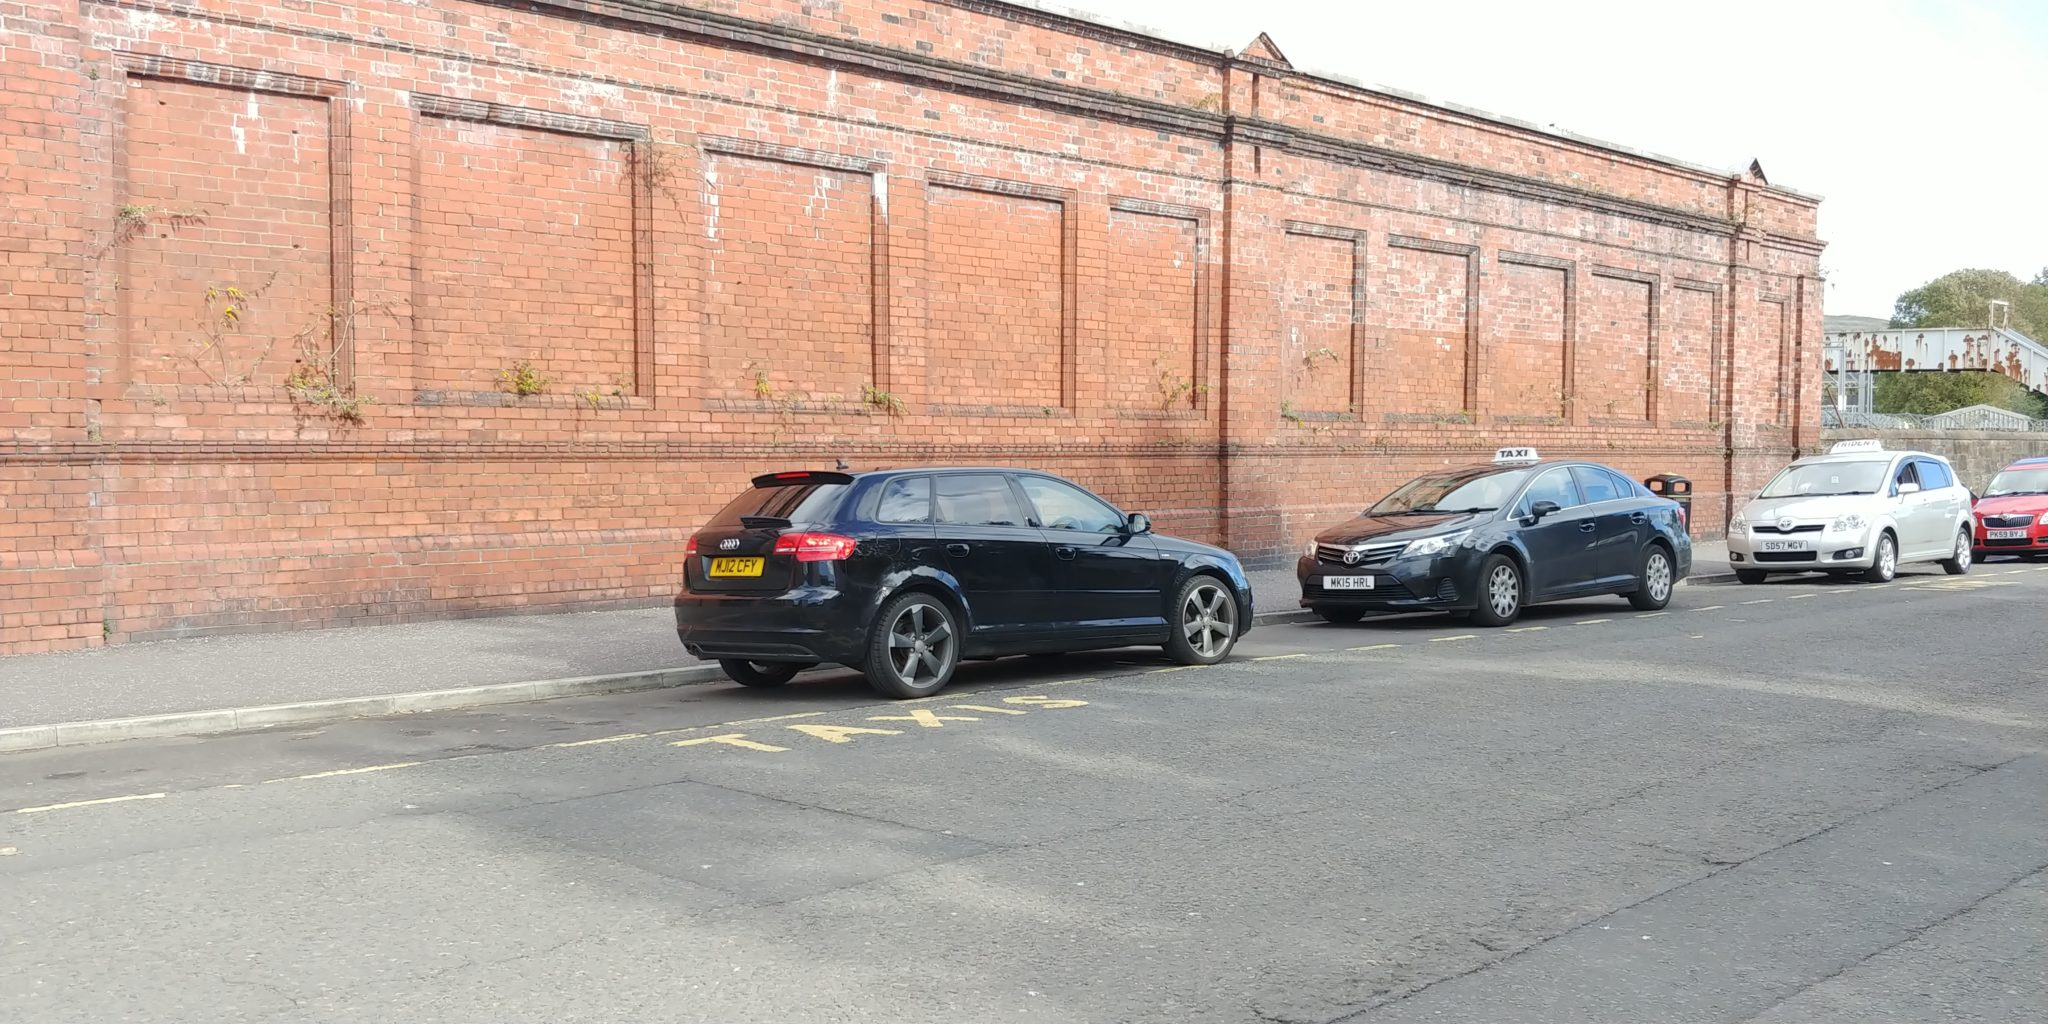 An entitled driver of a black Audi parks head on into the station rank